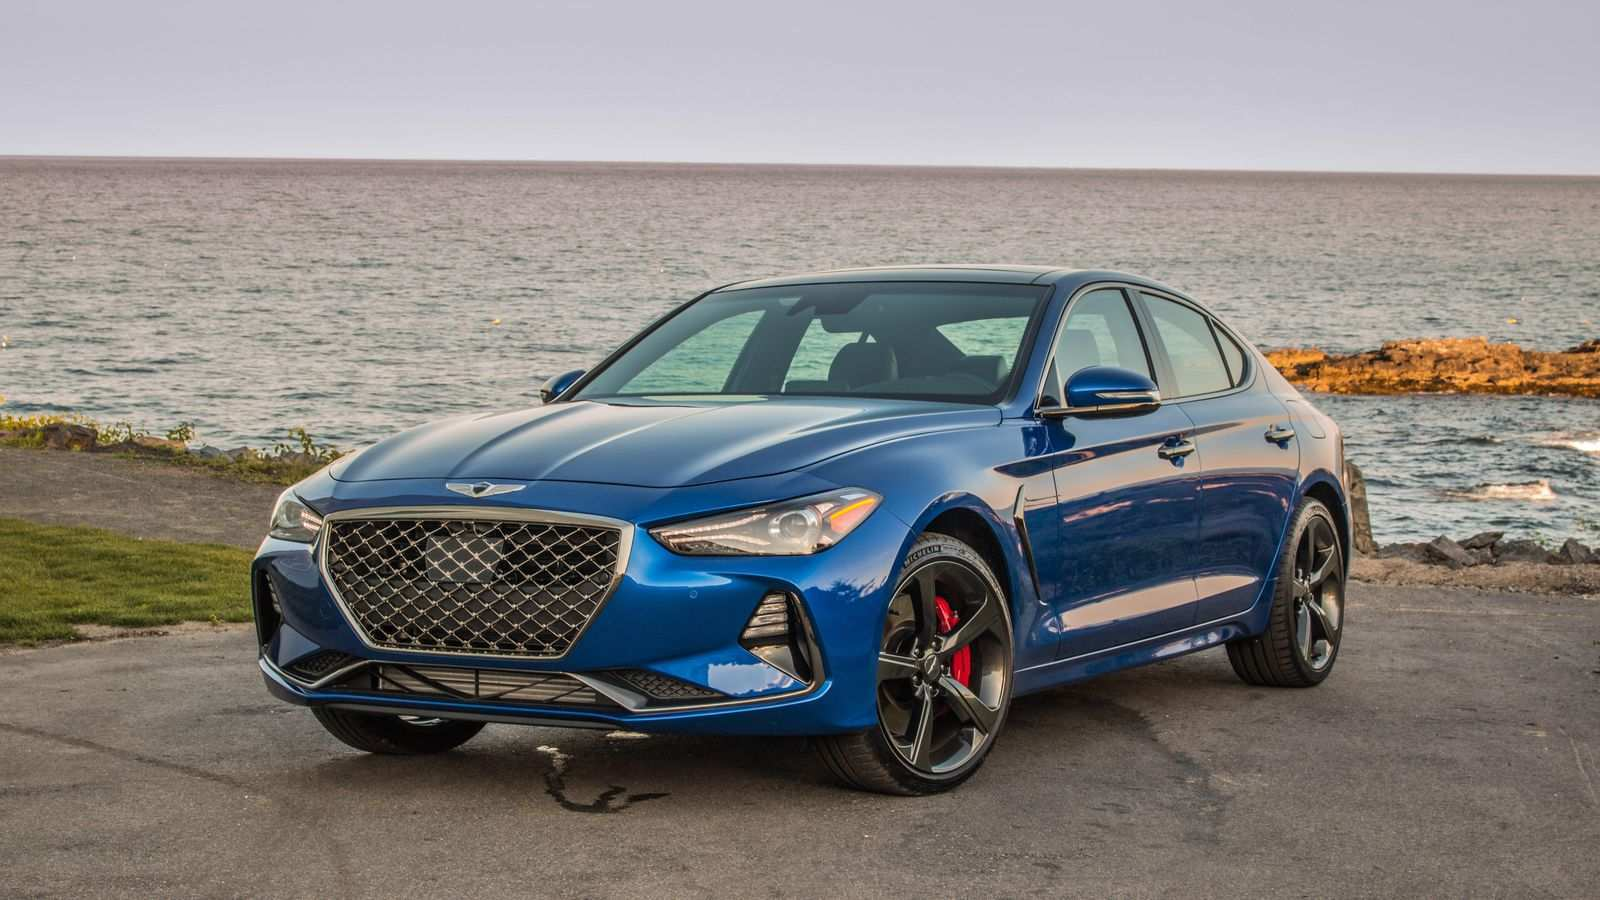 82 New 2019 Genesis G70 Review Exterior and Interior with 2019 Genesis G70 Review